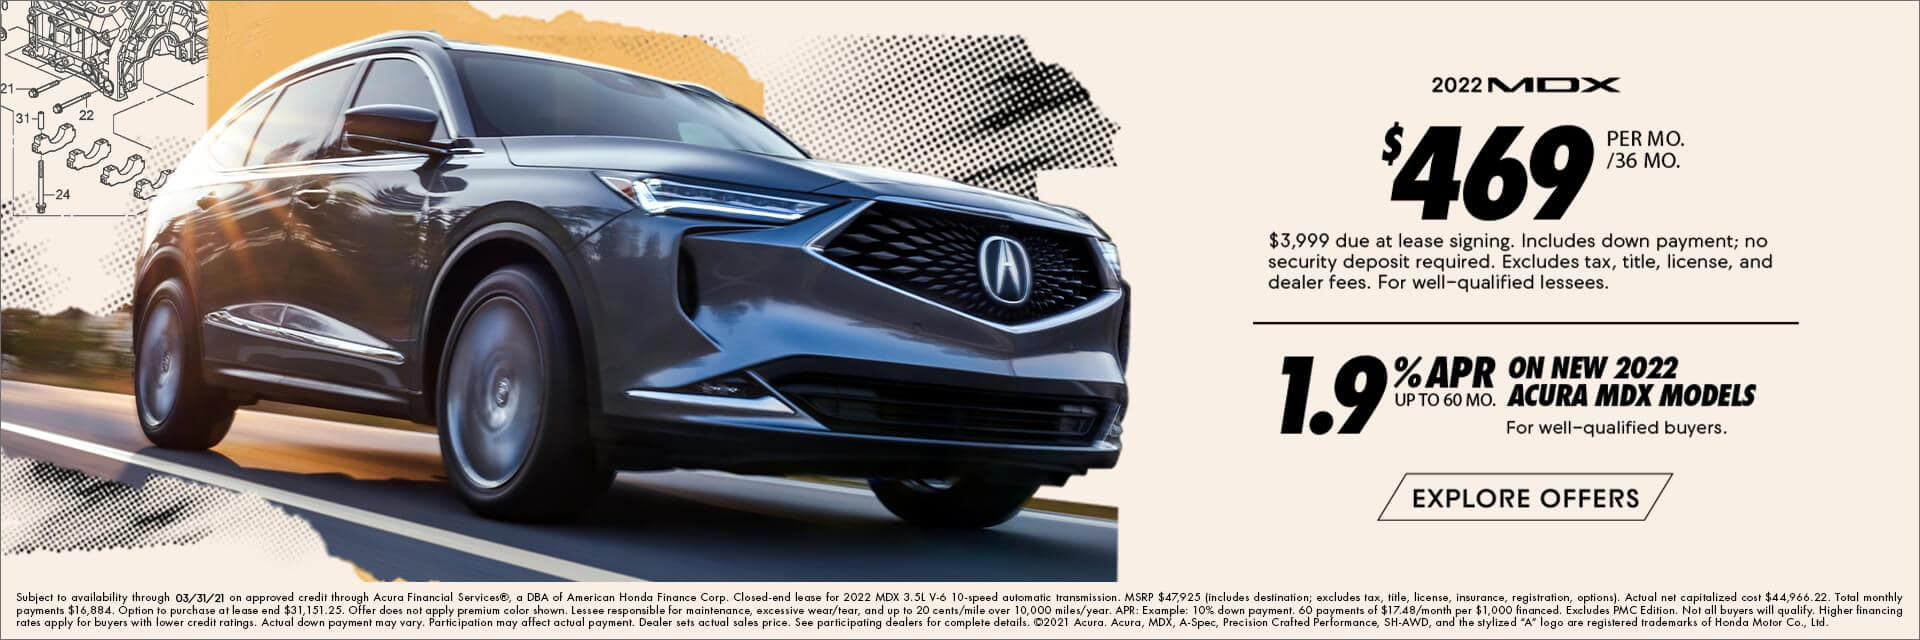 MDX22-BaseLaunch_ADDP_Dual_Offer_r04_1920x640_Lease-APR_March21